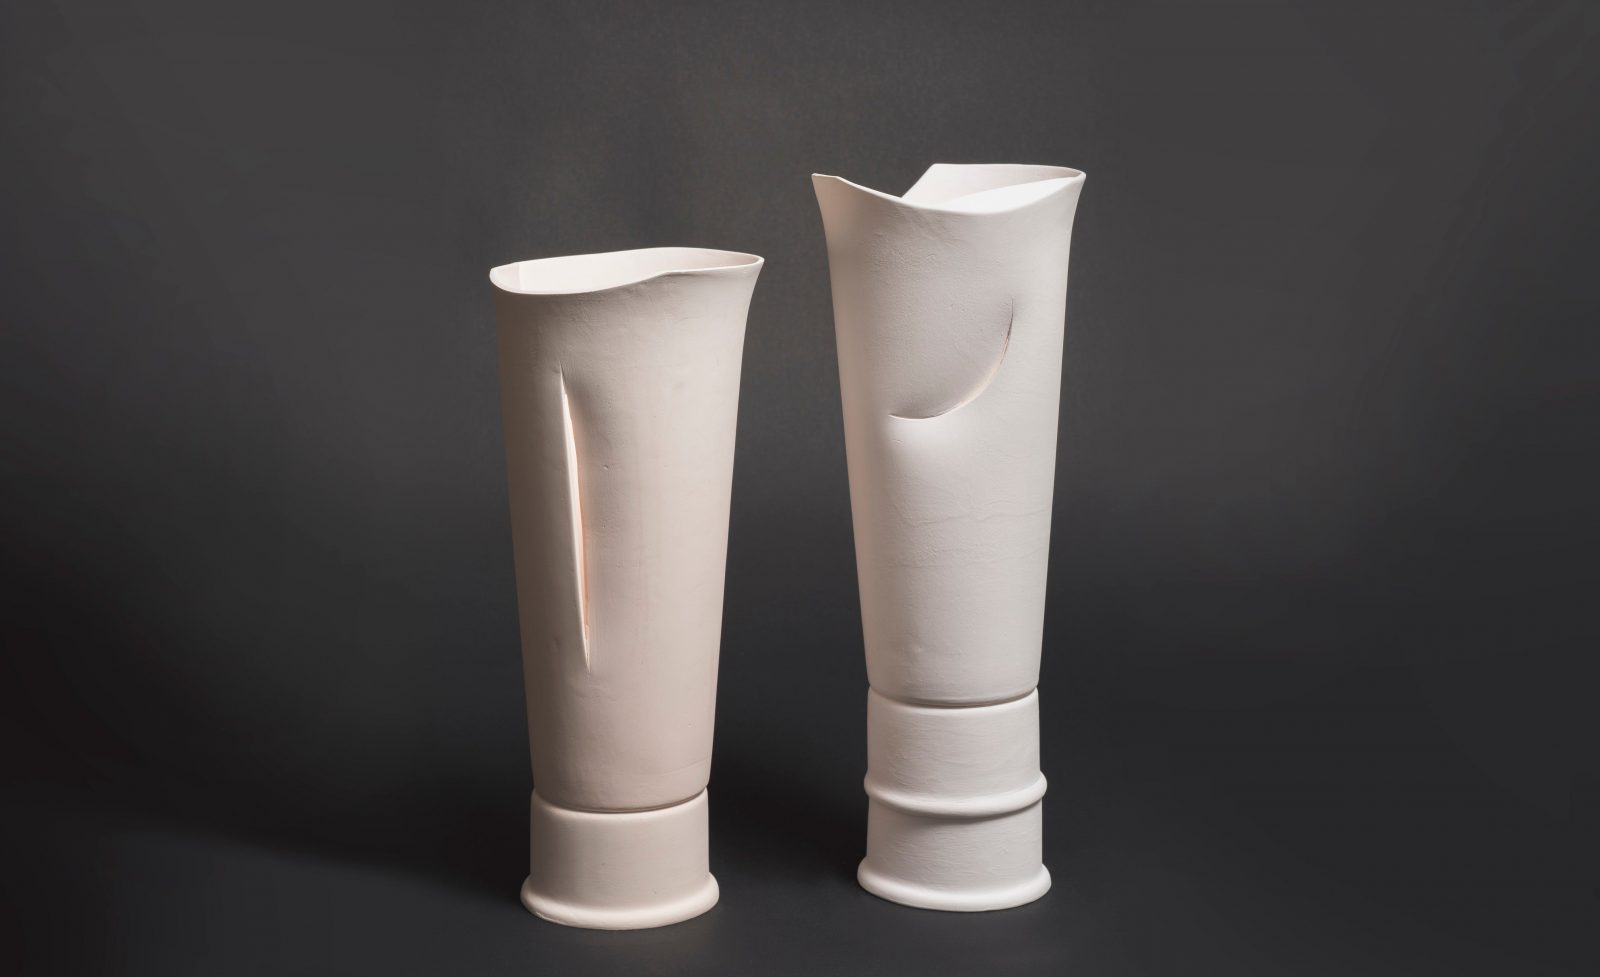 Image of two vases, thin with slits.